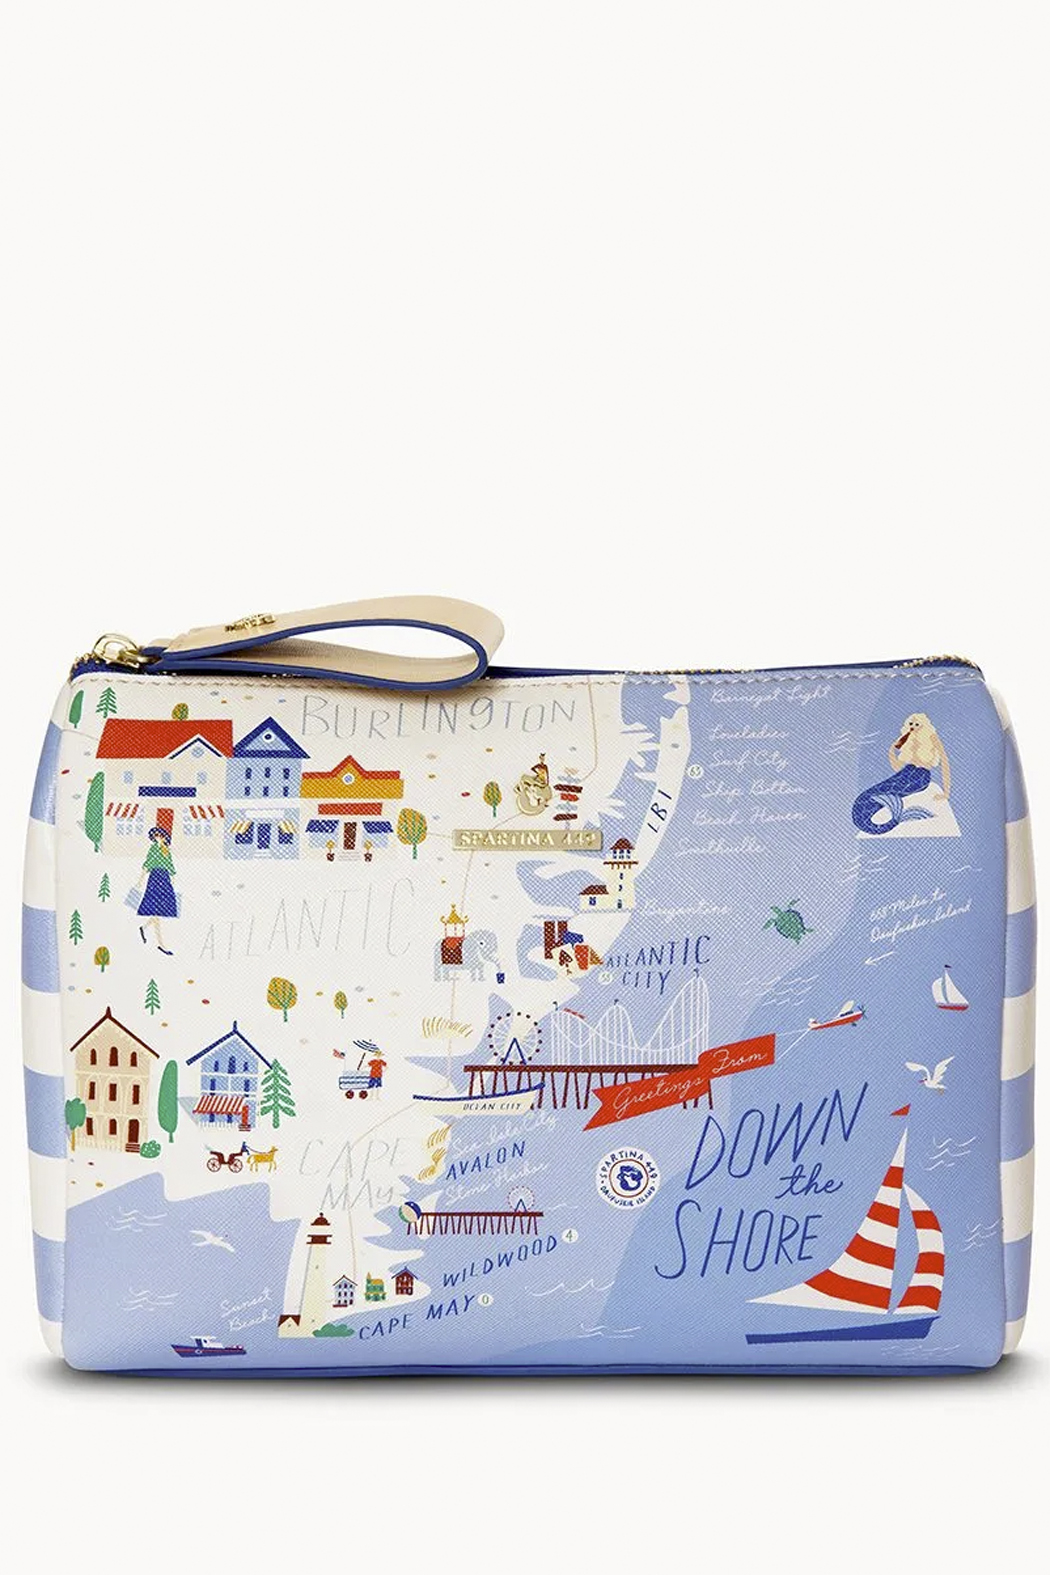 Spartina  Down the shore carry all case - Main Image